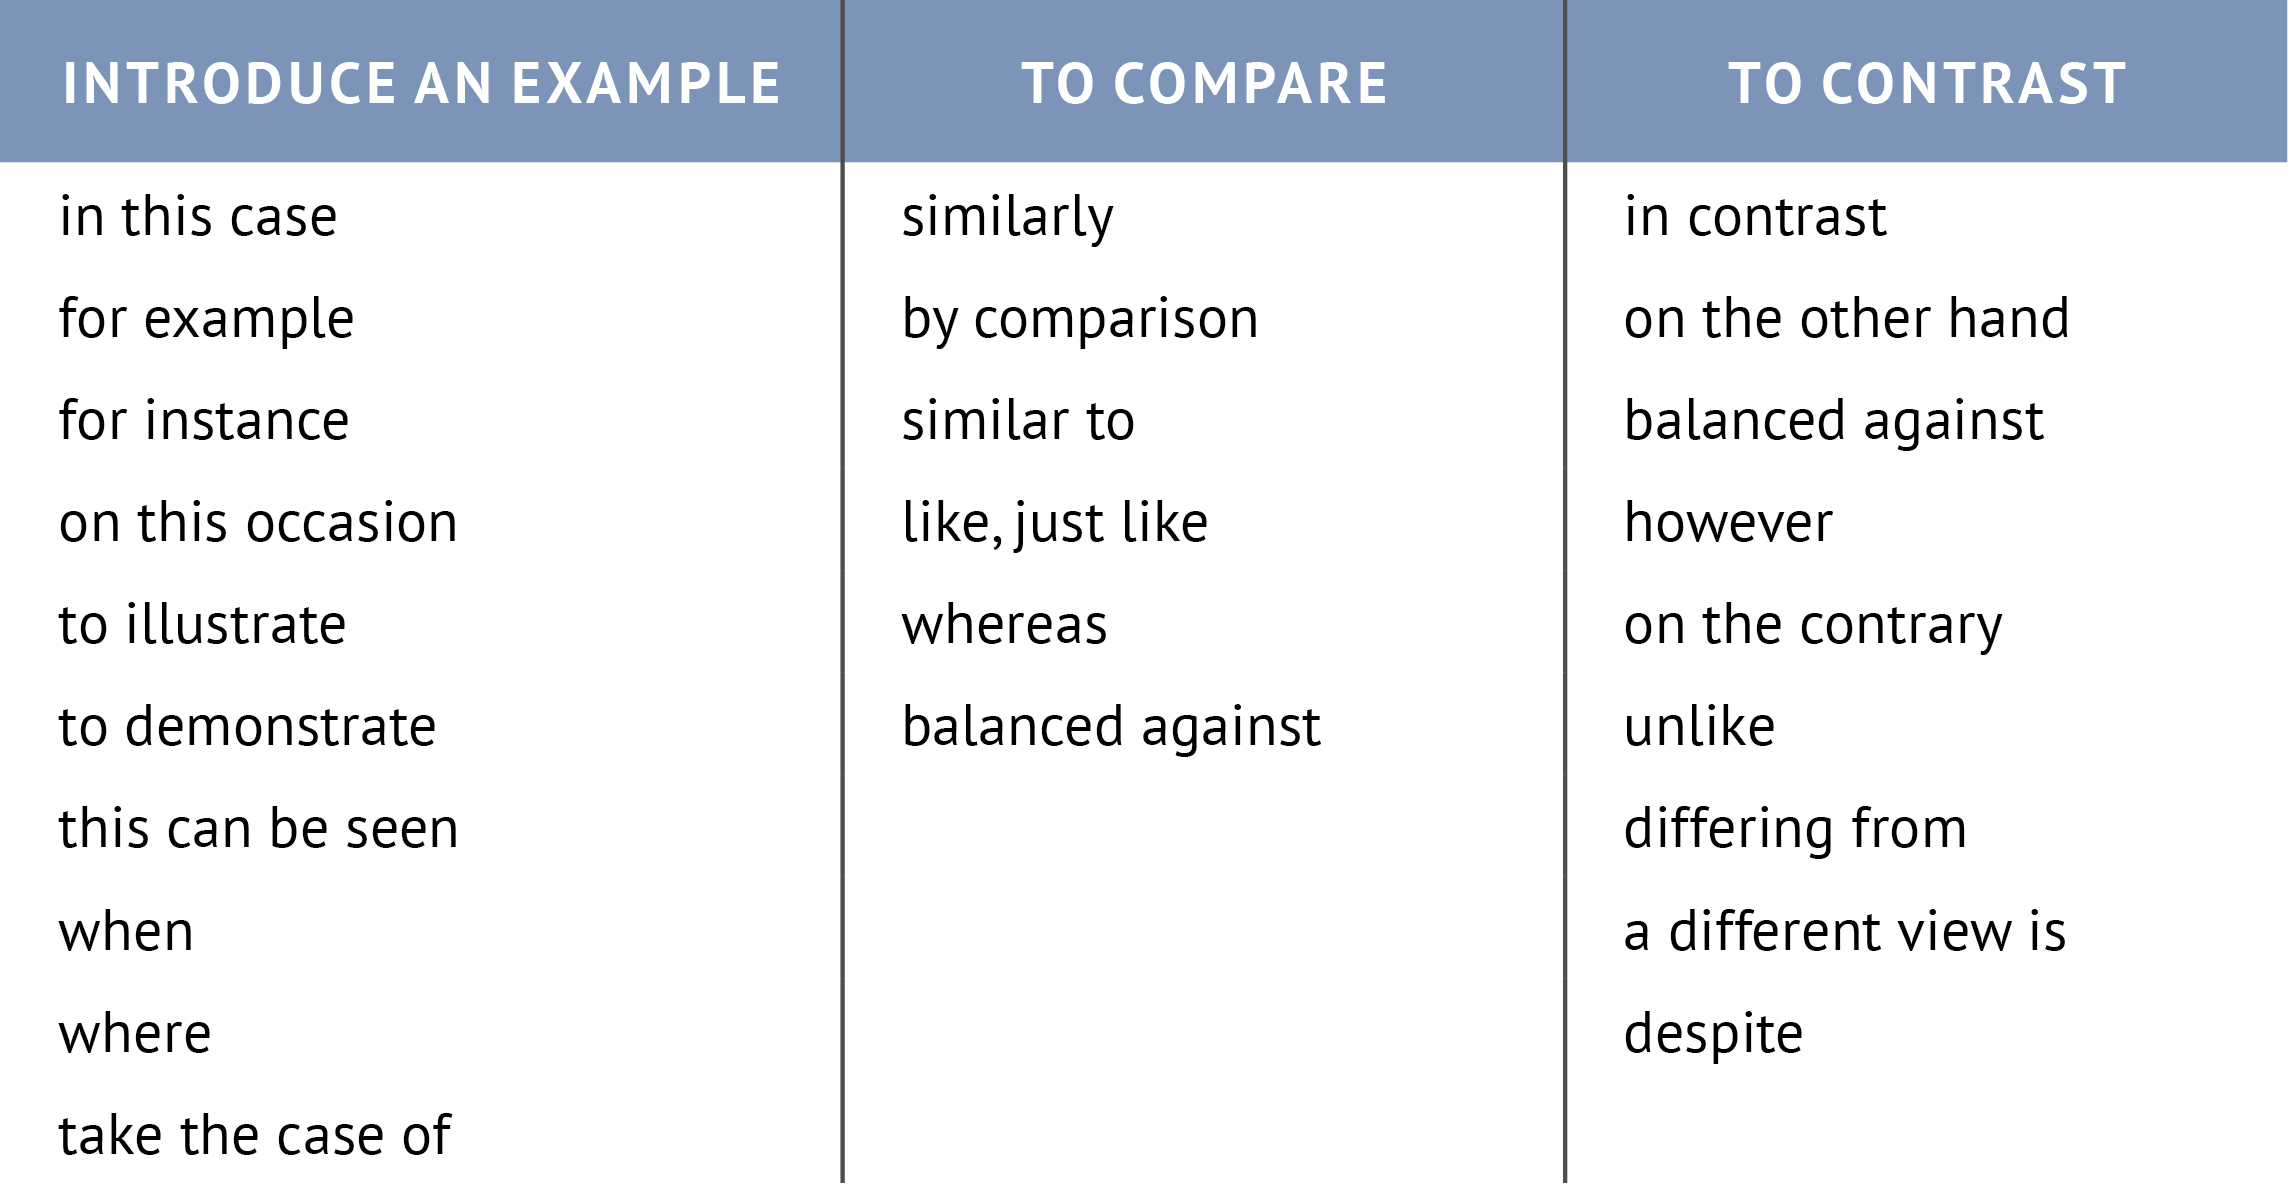 comparison and contrast essay useful phrases This is a guest post by these era education essay progressive child phrases are more suitable for academic essays on the other hand, alternatively, in contrast, more and more families are choosing to have only on.